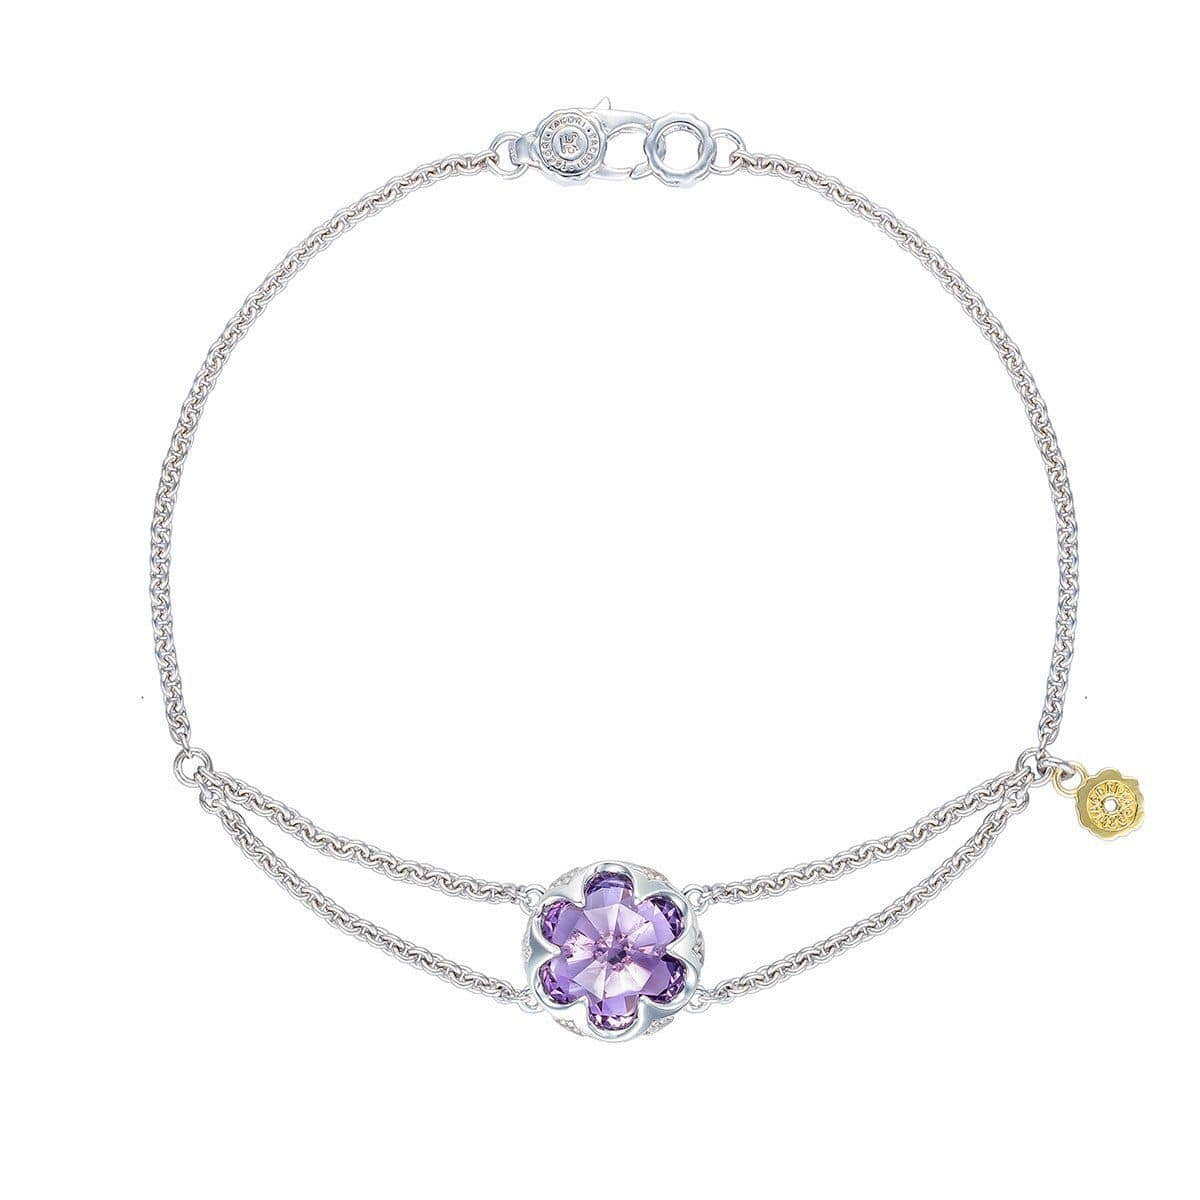 Silver Round Amethyst Bracelet Double Chain Anchor - SB19901-Tacori-Renee Taylor Gallery